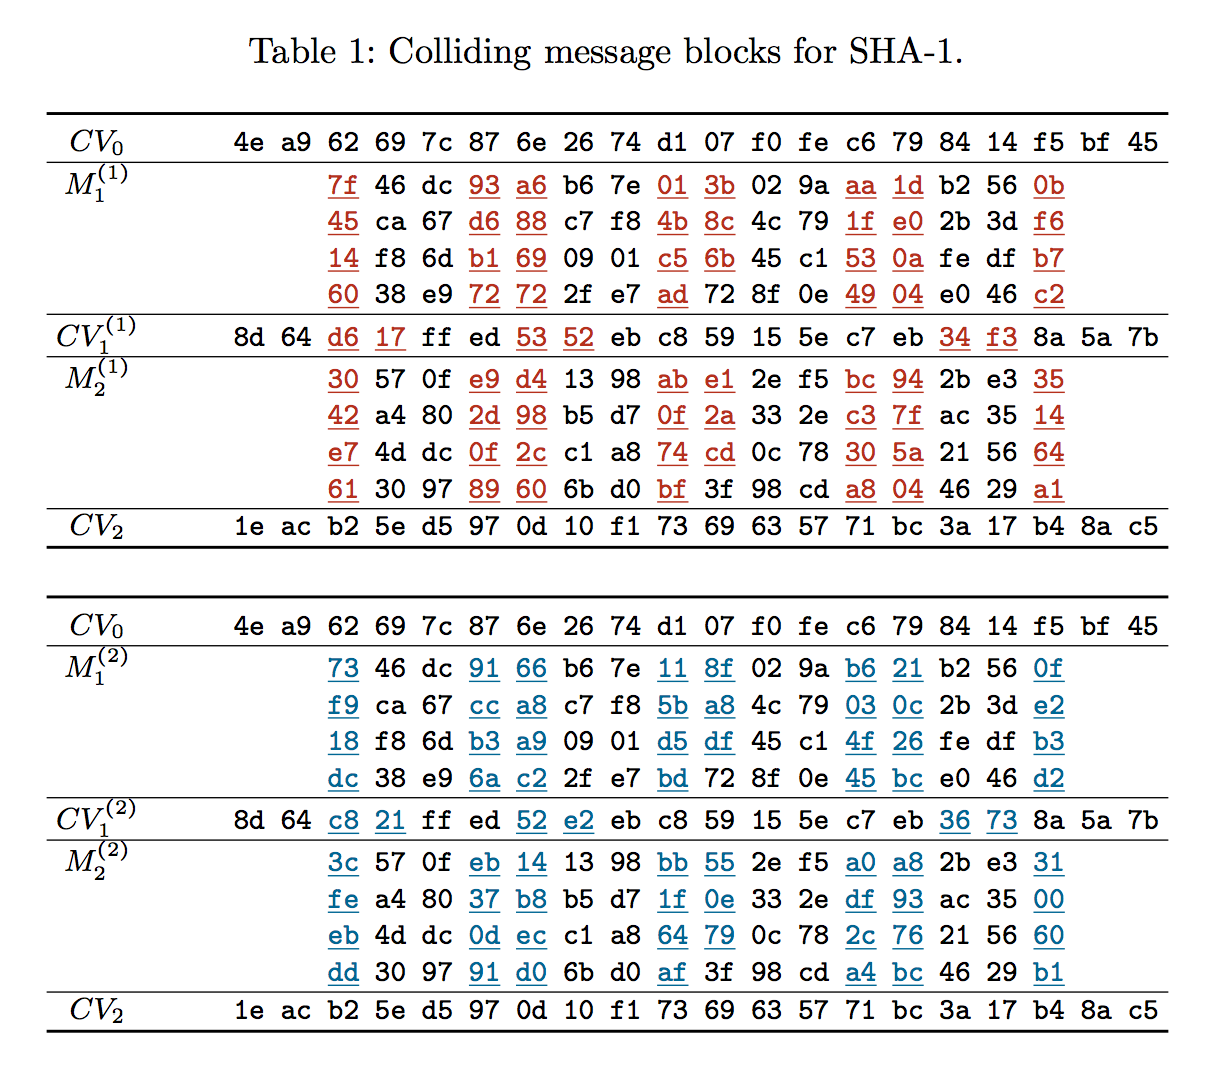 Why Replace SHA-1 with BLAKE2?